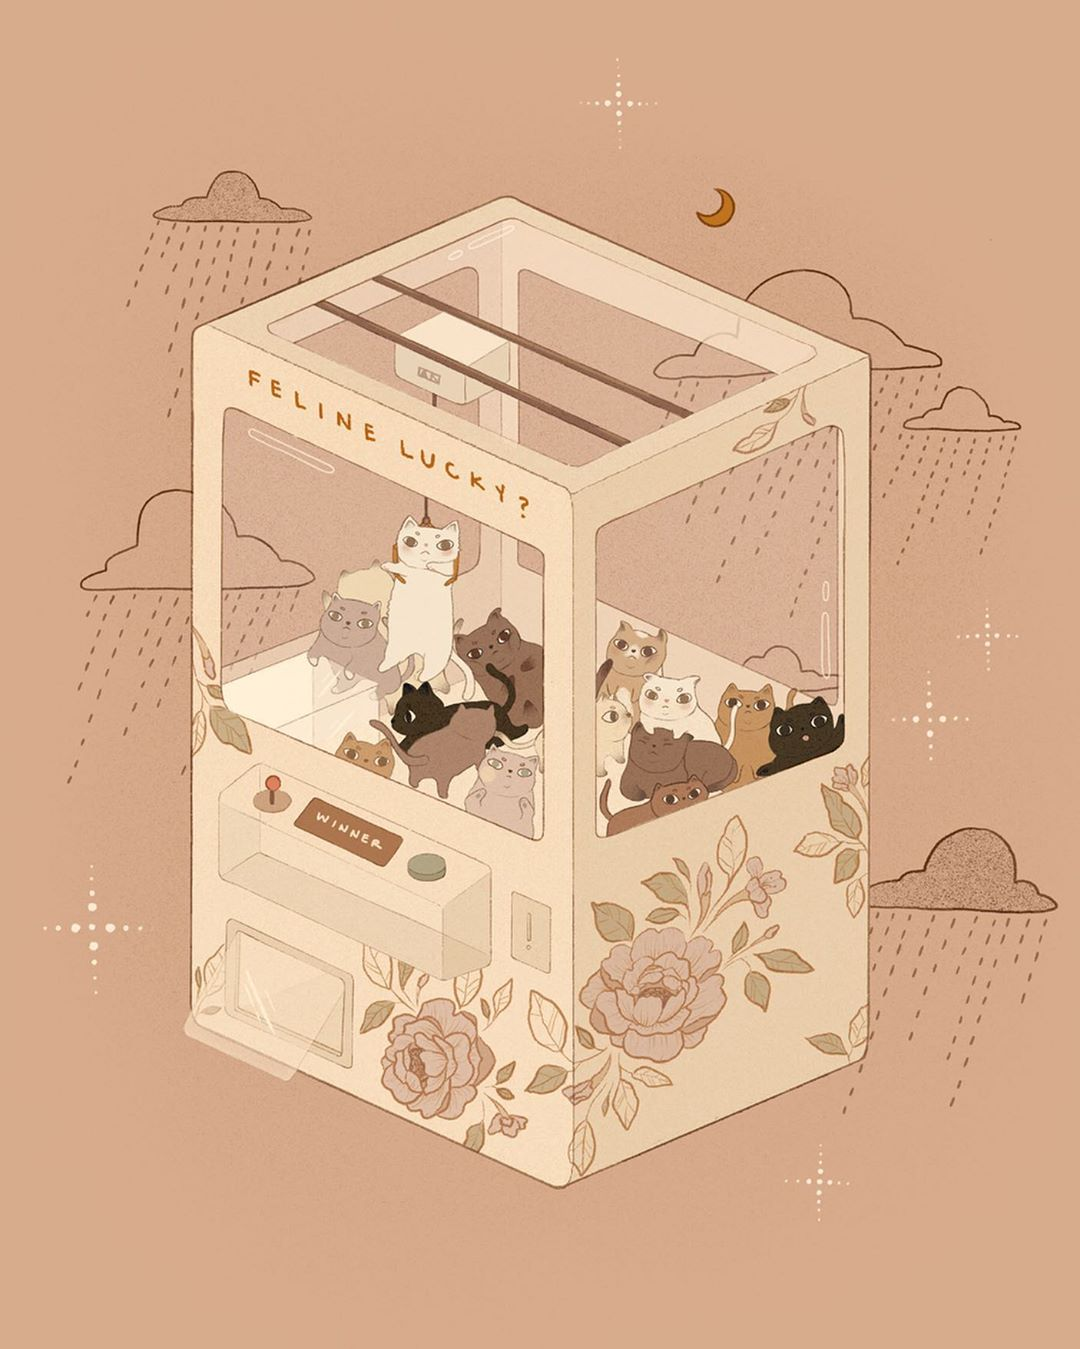 These Dreamlike Illustrations Will Appeal to Cat-Loving Children of the 1990s